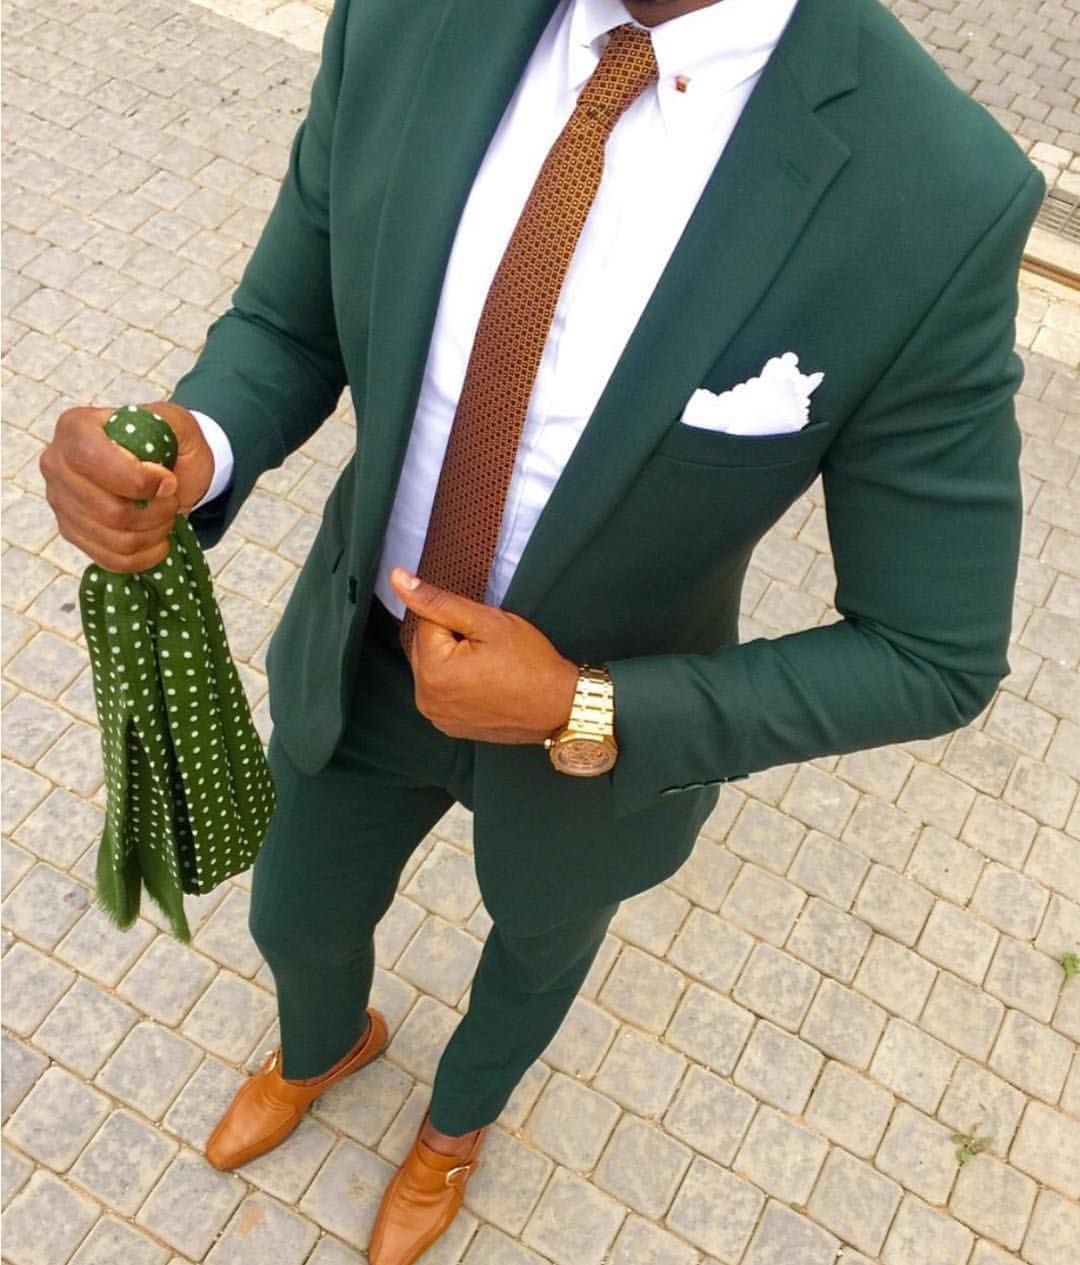 1 158 Likes 26 Comments Mens Fashion Suits Suitsharks On Instagram Impeccable Style